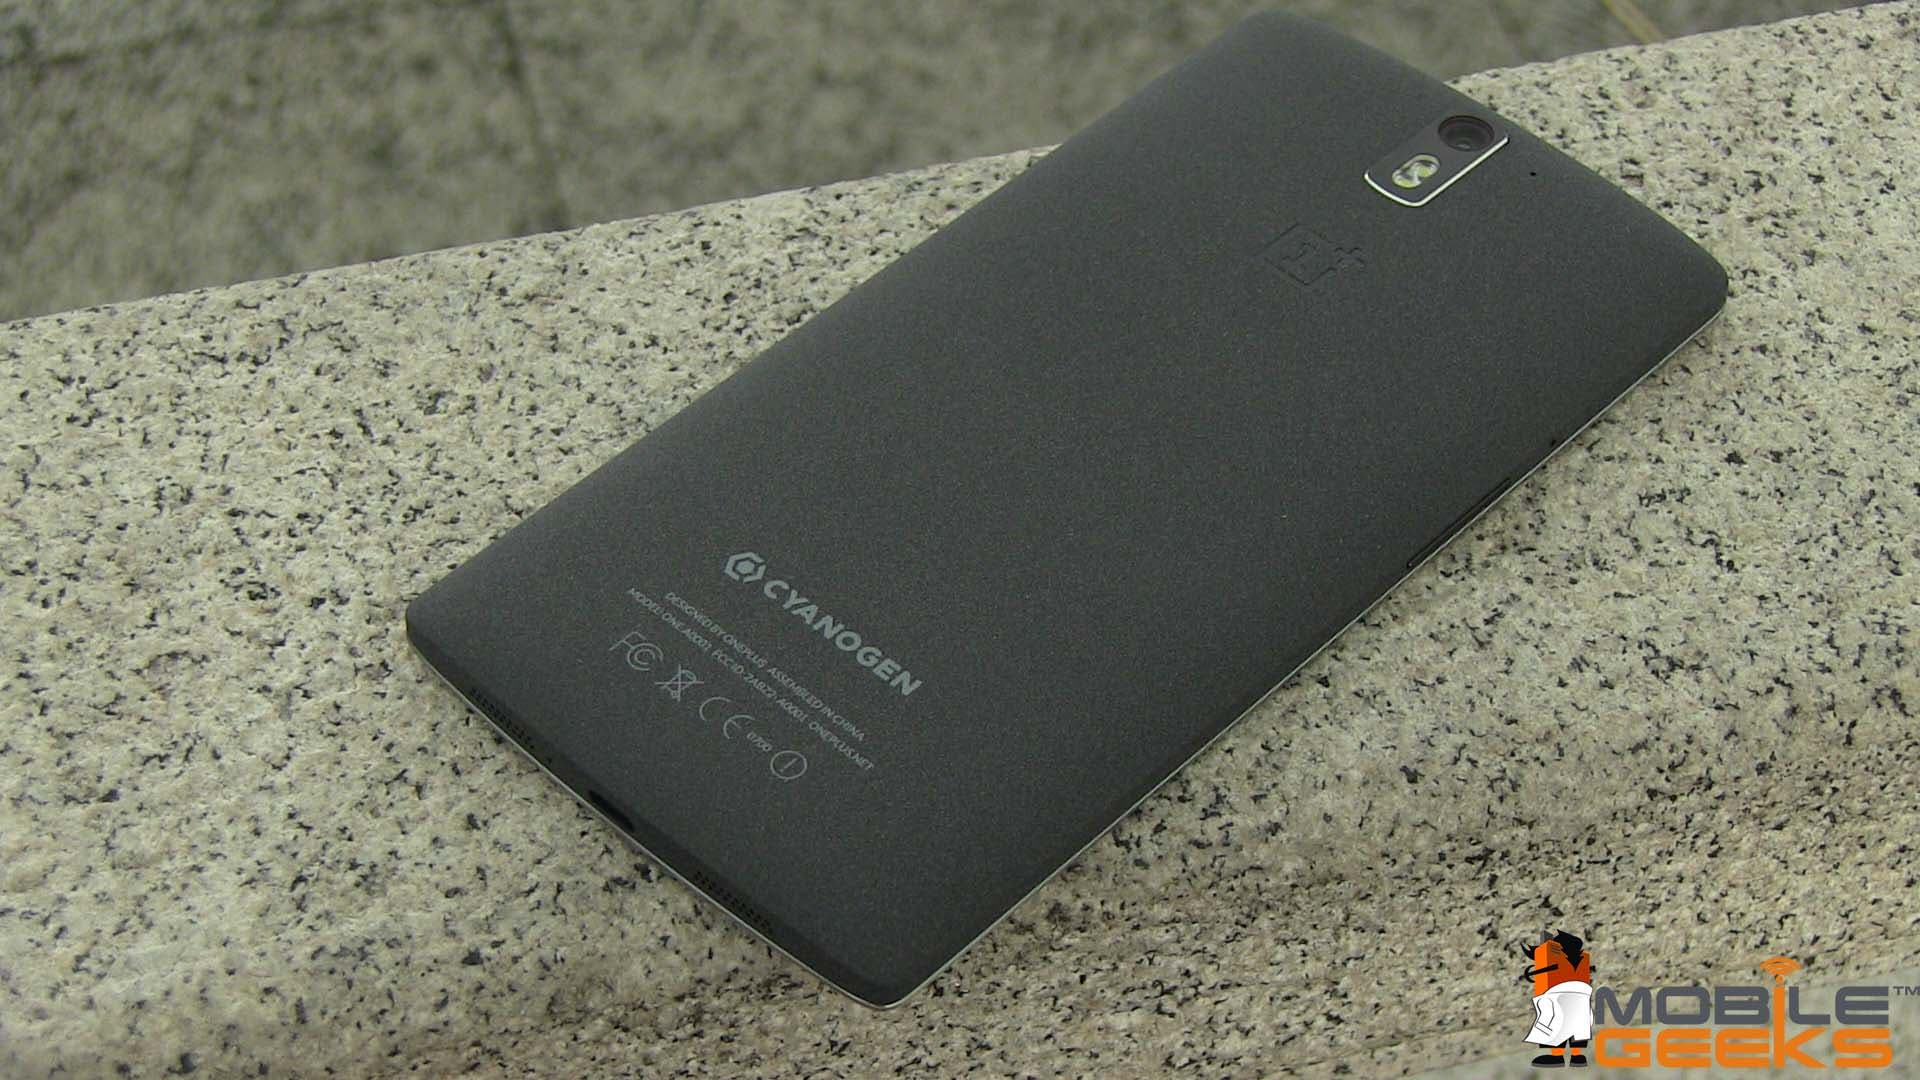 OnePlus-One-Unboxing-6